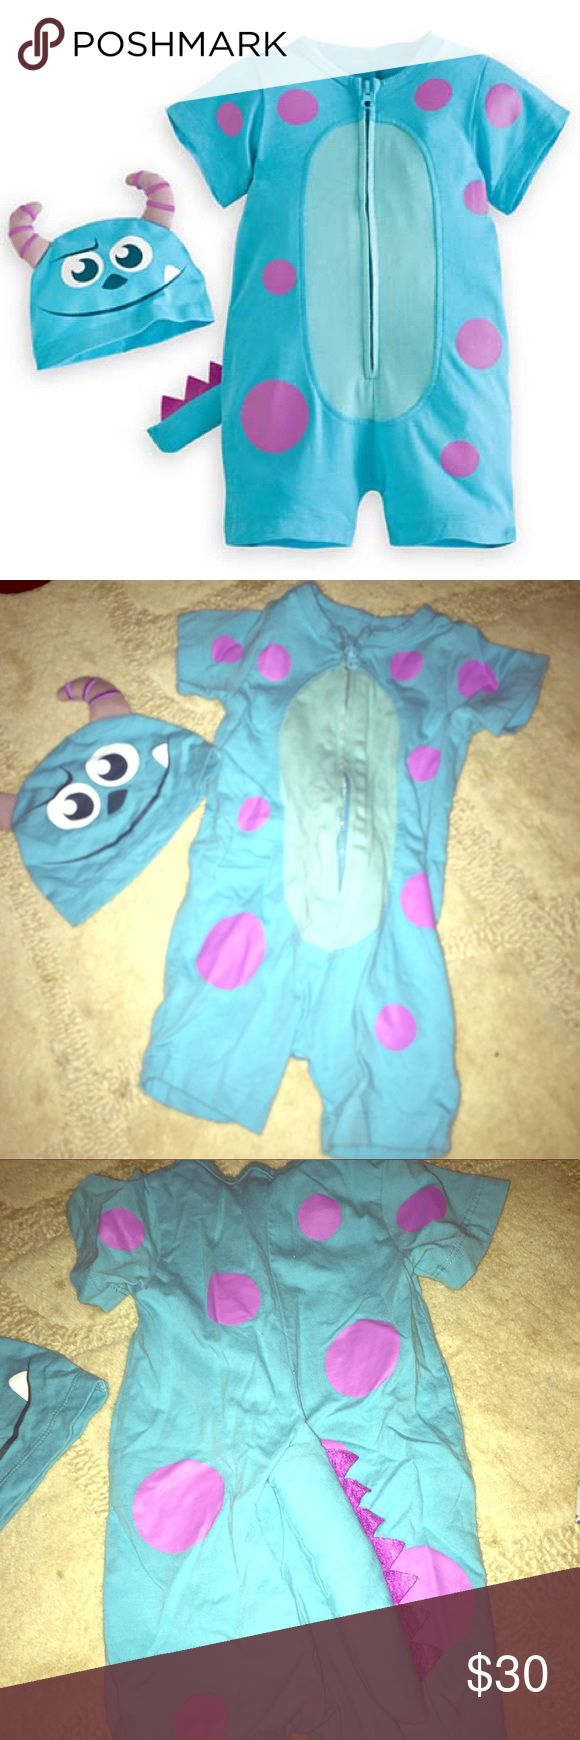 Disney Monsters Inc Sully costume 6 months Disney Parks authentic costume. Size 6m but runs a little smaller. Worn once. Excellent condition. Disney Costumes Halloween